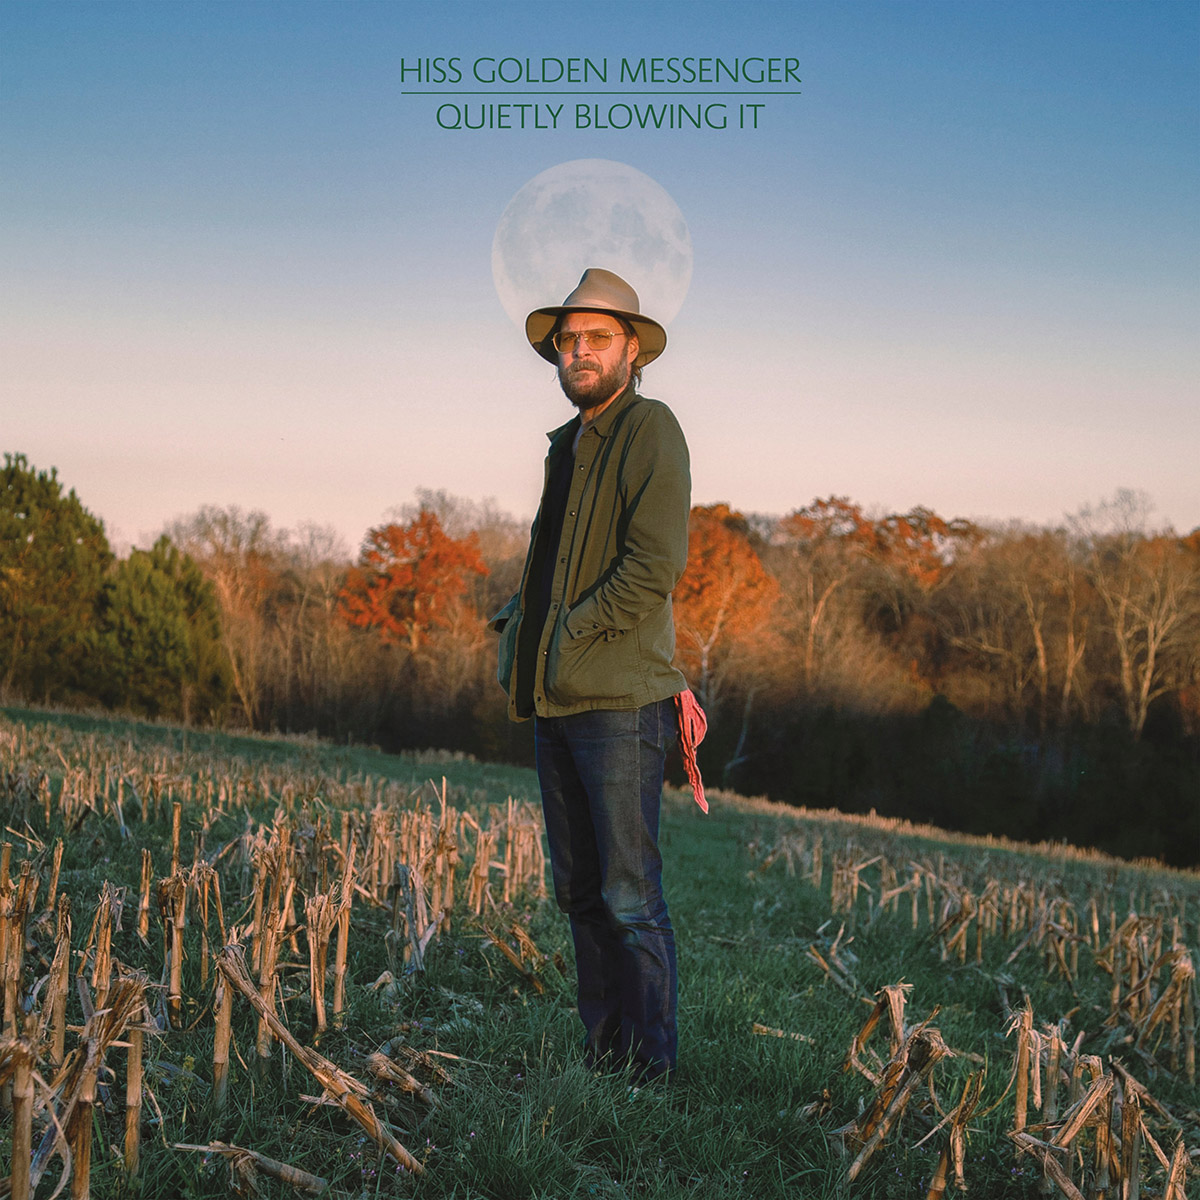 Quietly Blowing It - Hiss Golden Messenger